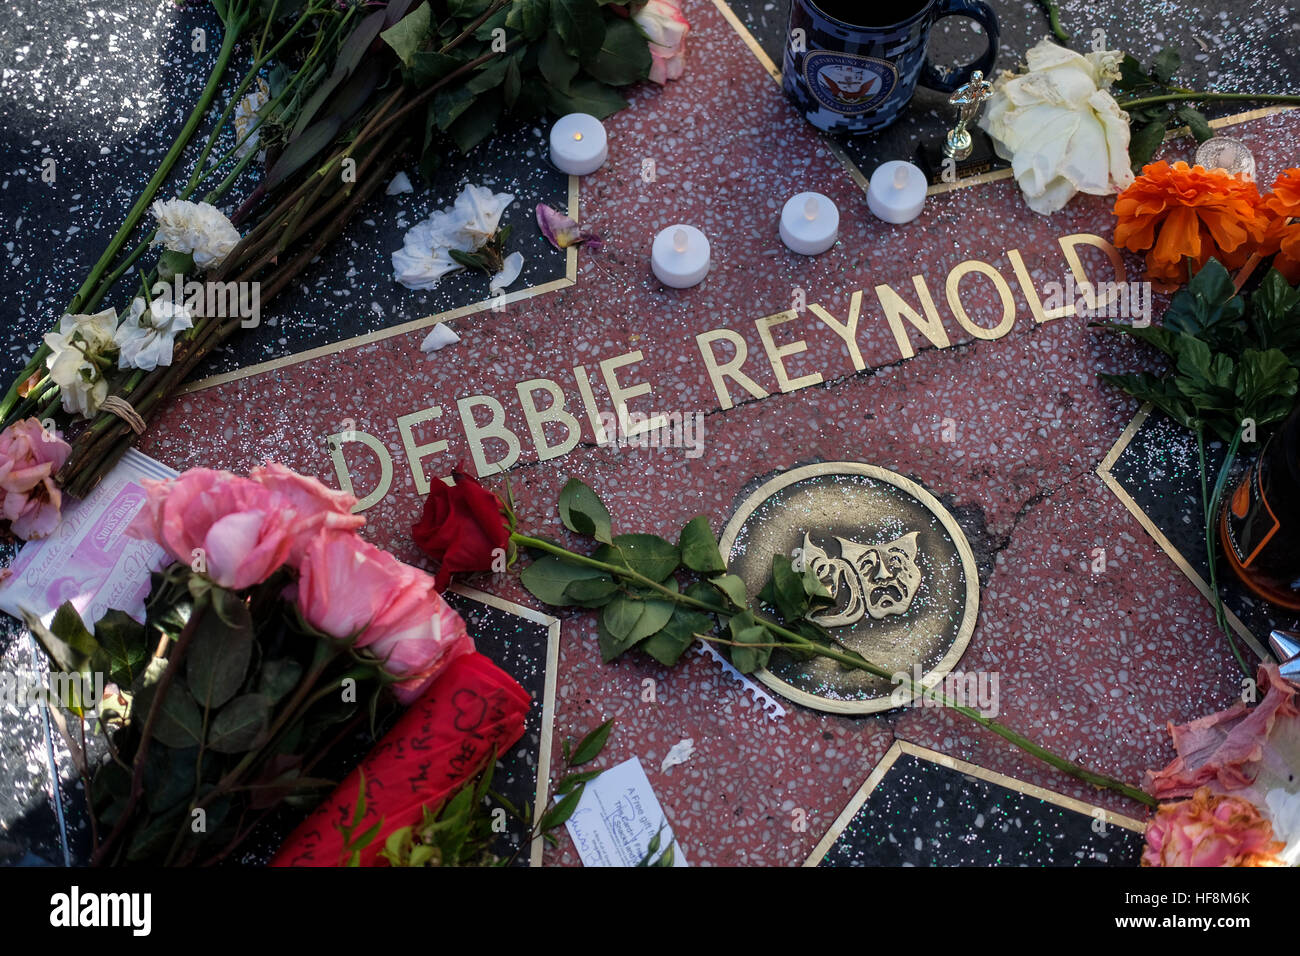 Los Angeles, USA. 29th Dec, 2016. Flowers and candles surround the Hollywood Walk of Fame star of Debbie Reynolds, - Stock Image